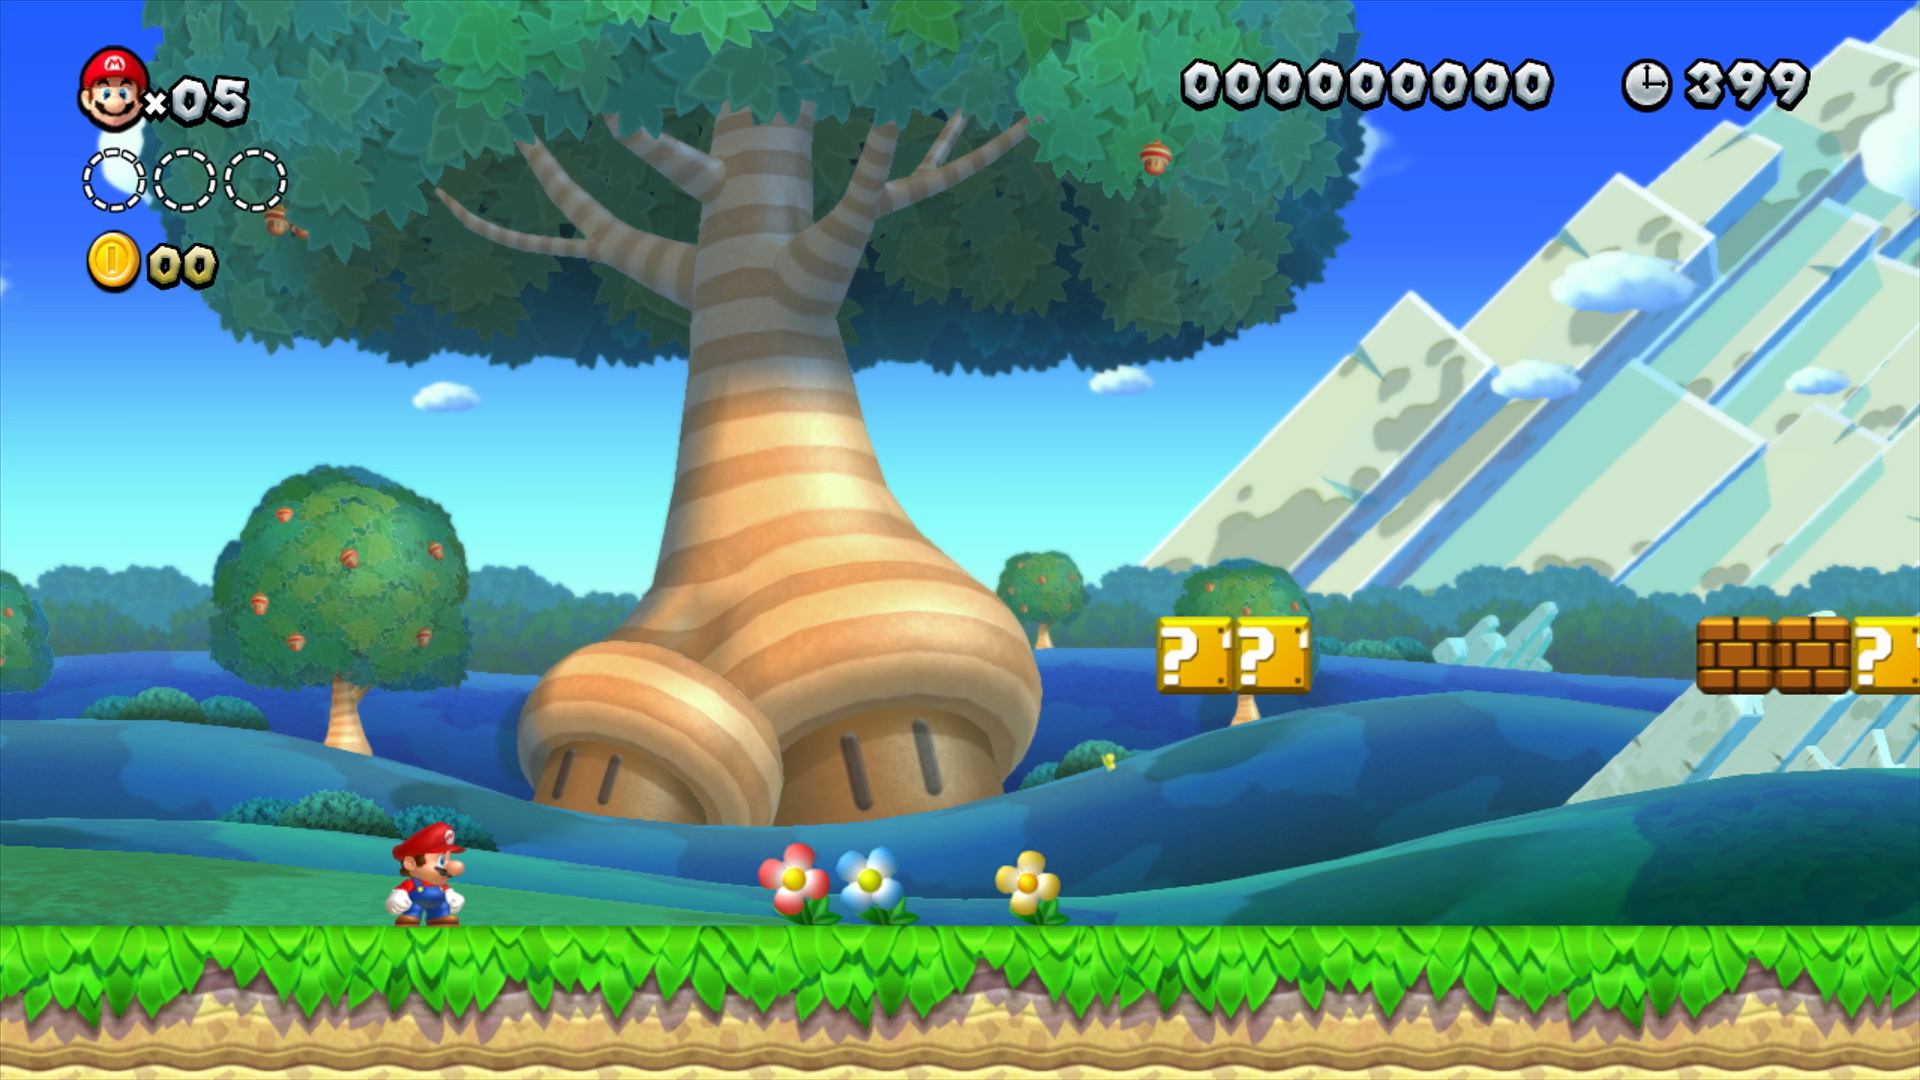 How New Super Mario Bros U Deluxe On Switch Improves Over Wii U